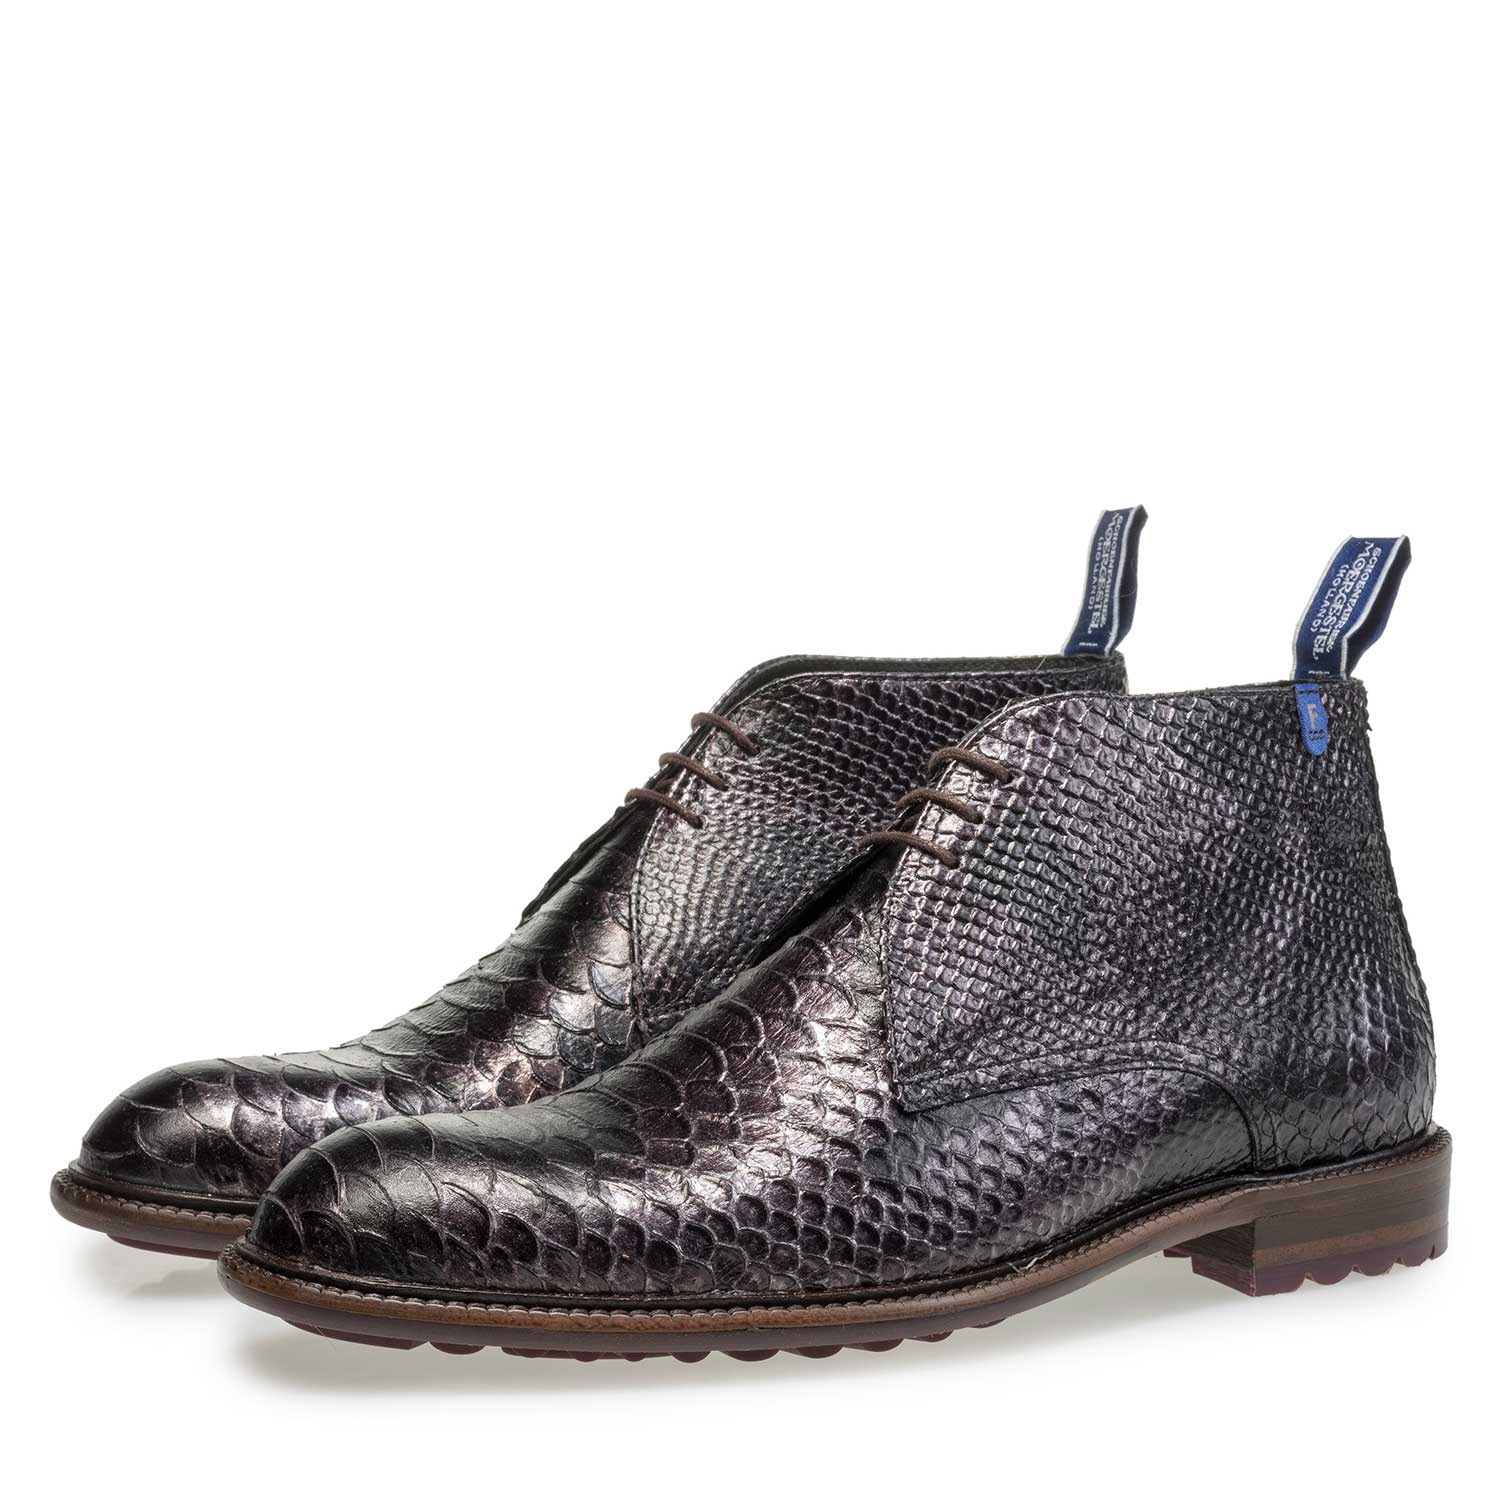 10203/12 - Grey calf leather snake print lace boot